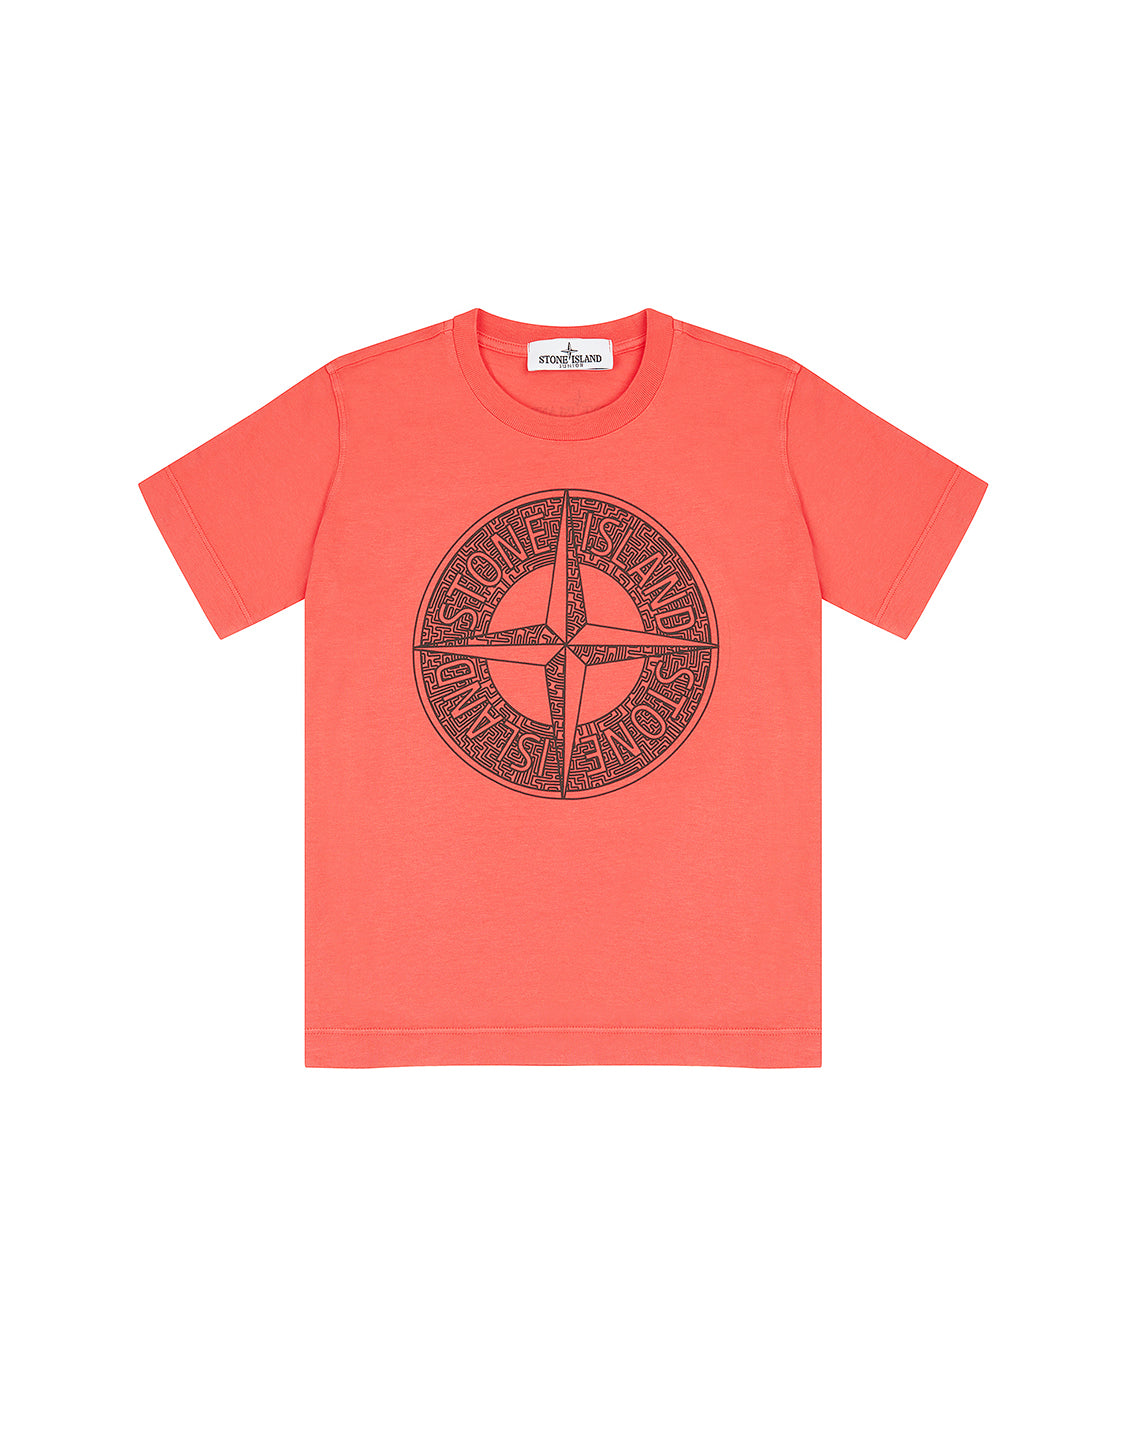 21059 T-Shirt in Coral